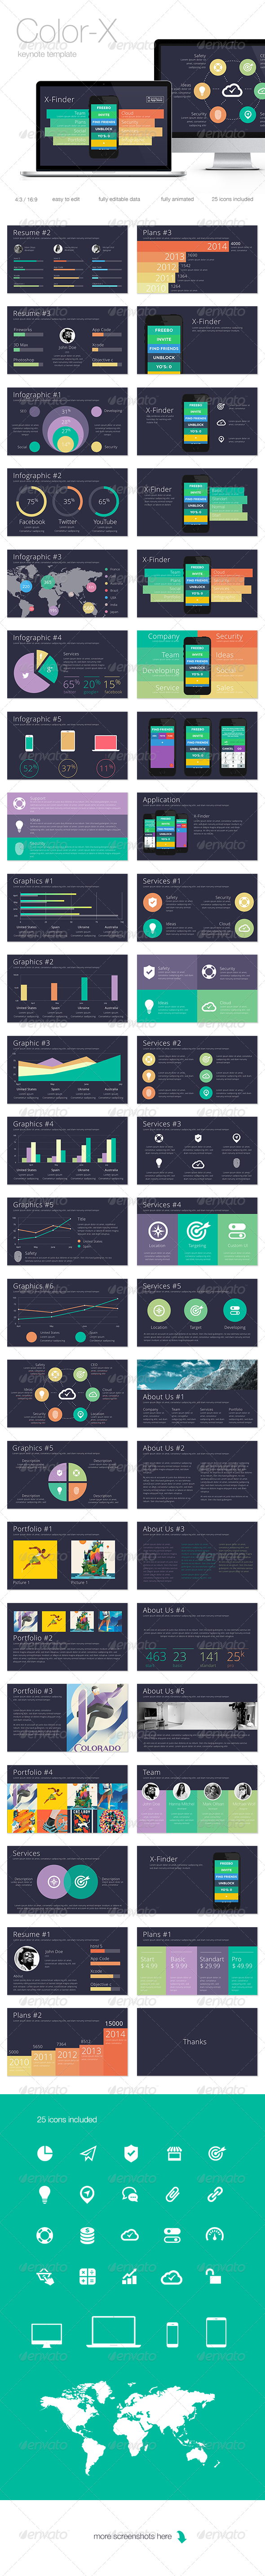 GraphicRiver Color-X Keynote Template 8365792